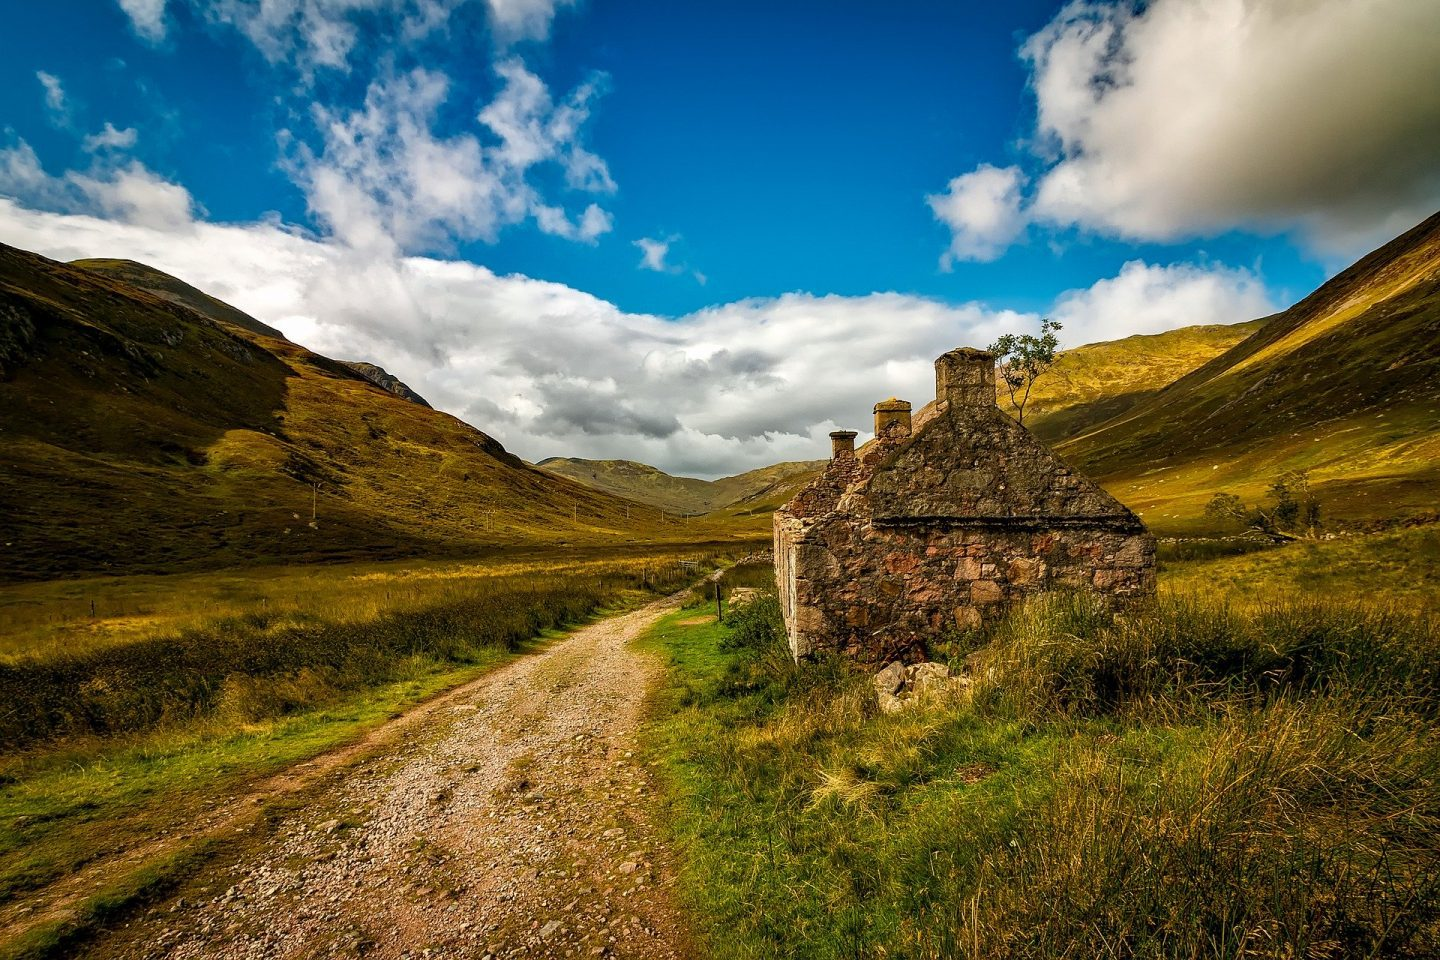 A dirt road in rural Scotland with an abandoned stone cottage